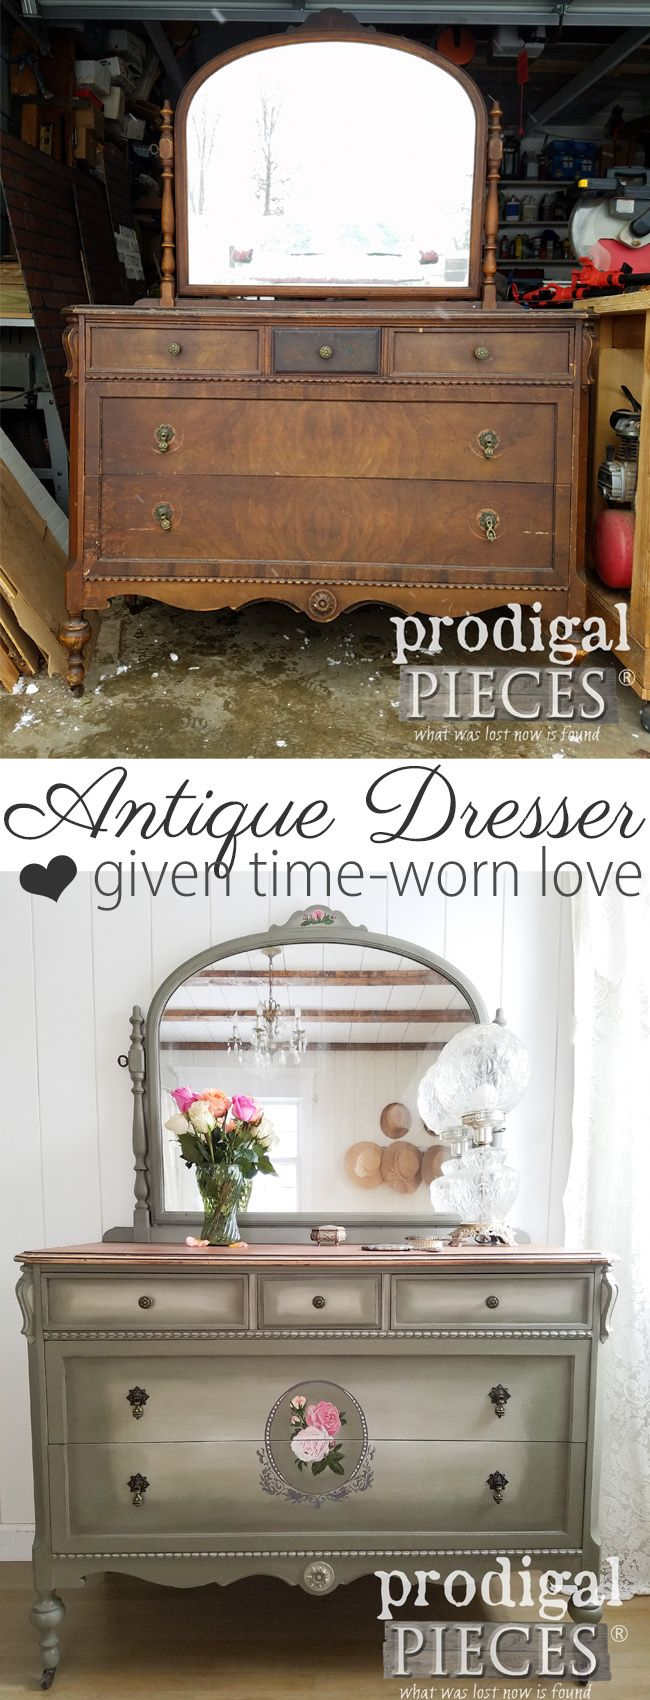 A tired and worn antique dresser gets the new look of a lifetime. Larissa of Prodigal Pieces tackles the damage to bring it new life. Read the story at prodigalpieces.com #prodigalpieces #furniture #bedroom